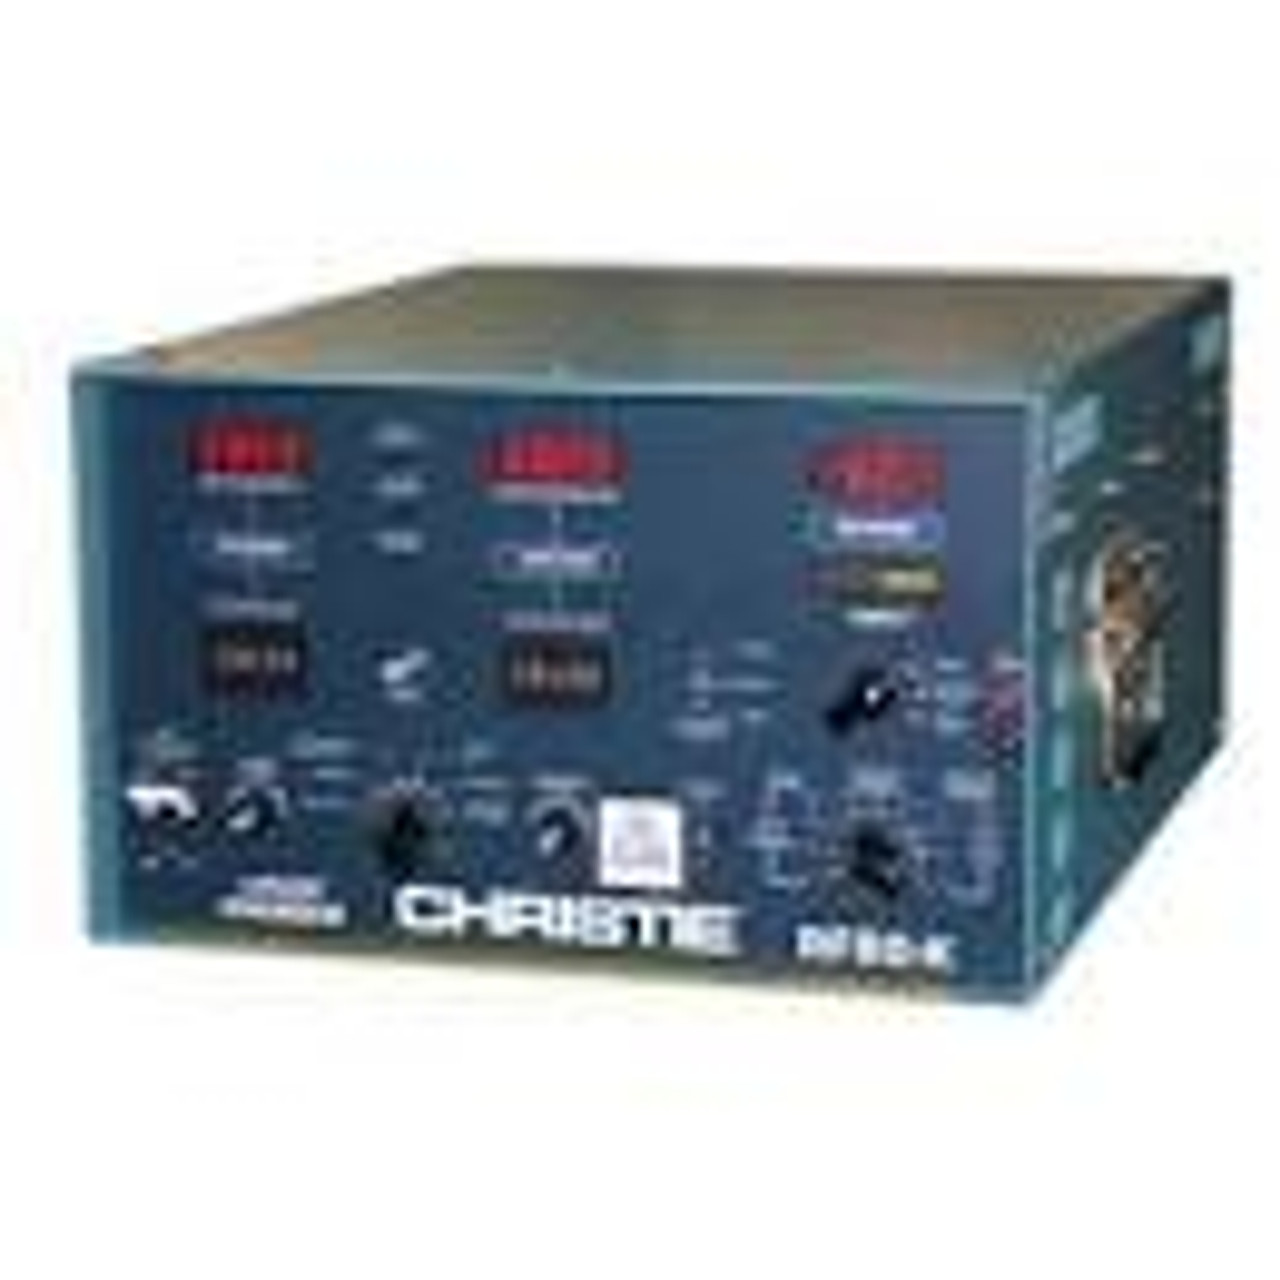 Christie RF80-M Aircraft Lead Acid & Ni-Cad Battery Charger / Analyzer / 123020-001  The NEW CHRISTIE® RF80-M® Aircraft Battery Charger/Analyzer is the latest evolution of the popular RF80 series which has been the worldwide industry standard for decades. The RF80-M is the first product of its kind to feature an advanced microcontroller with touch-screen display. The optional ABMS-10X PC Interface provides PC control, data-logging, diagnostics and expanded battery processing capabilitiespart Number:123020-001 .-